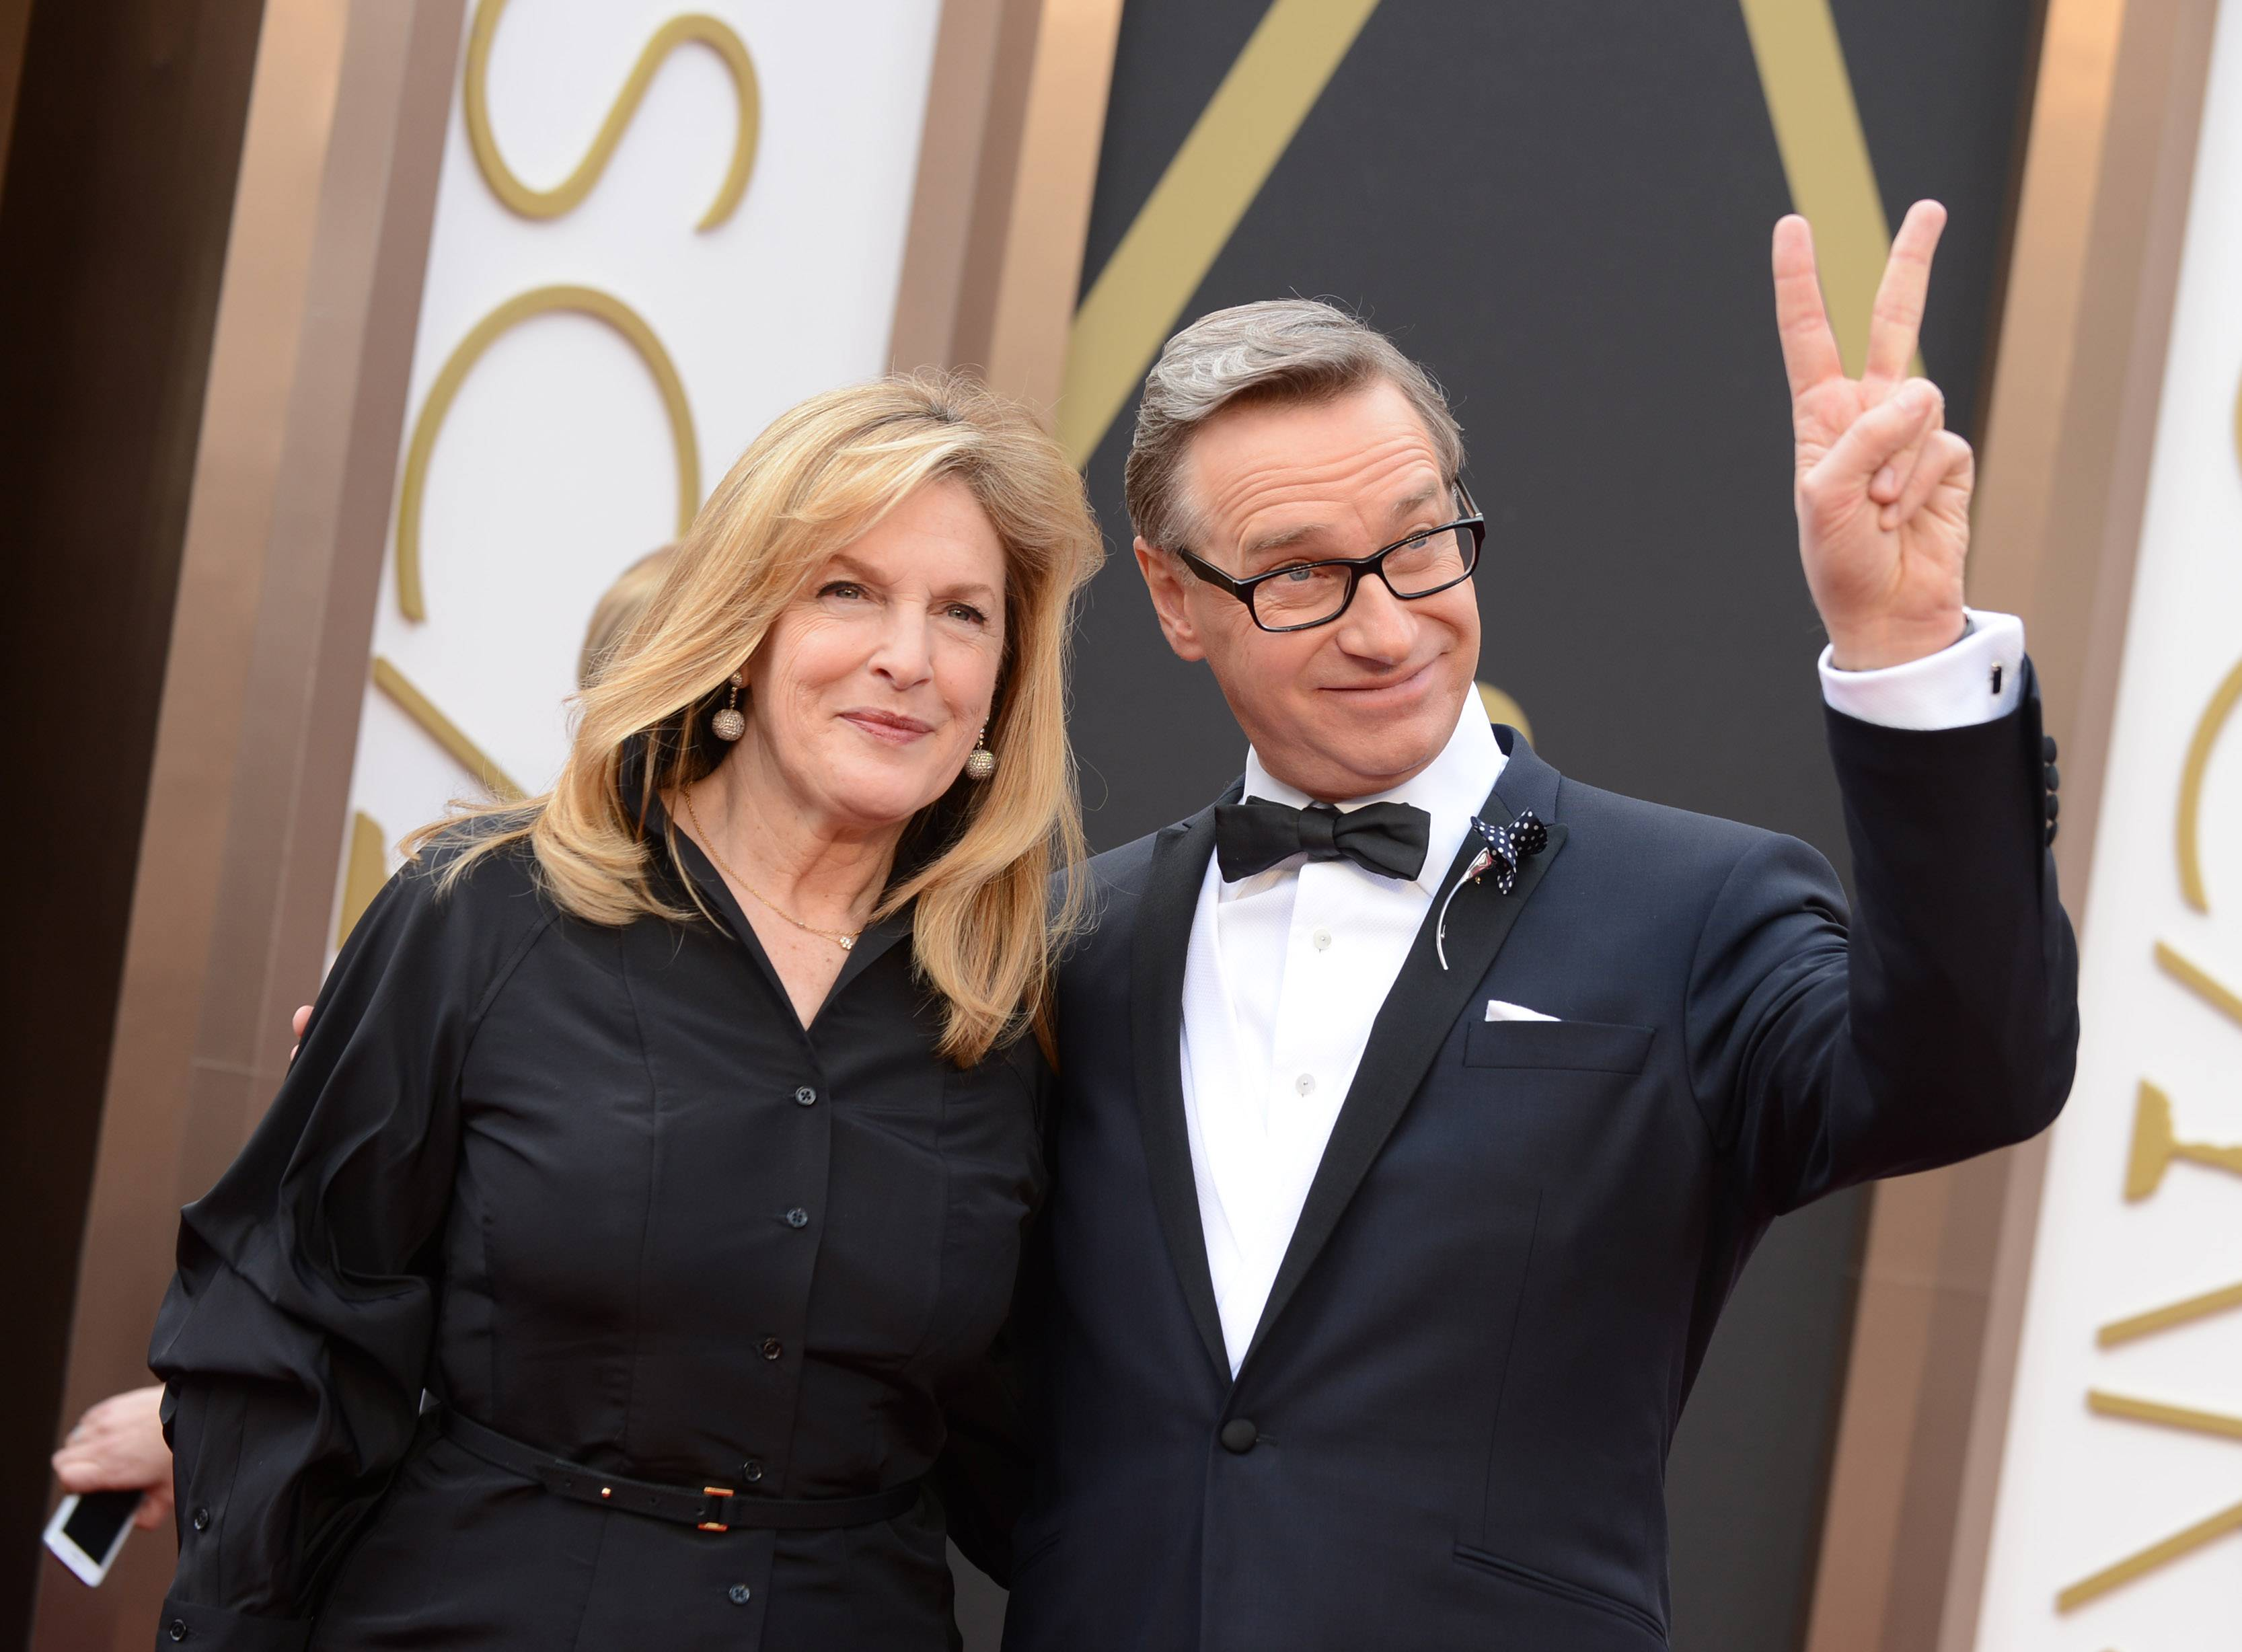 Laurie Karon and director Paul Feig arrive at the Oscars on Sunday at the Dolby Theatre in Los Angeles.